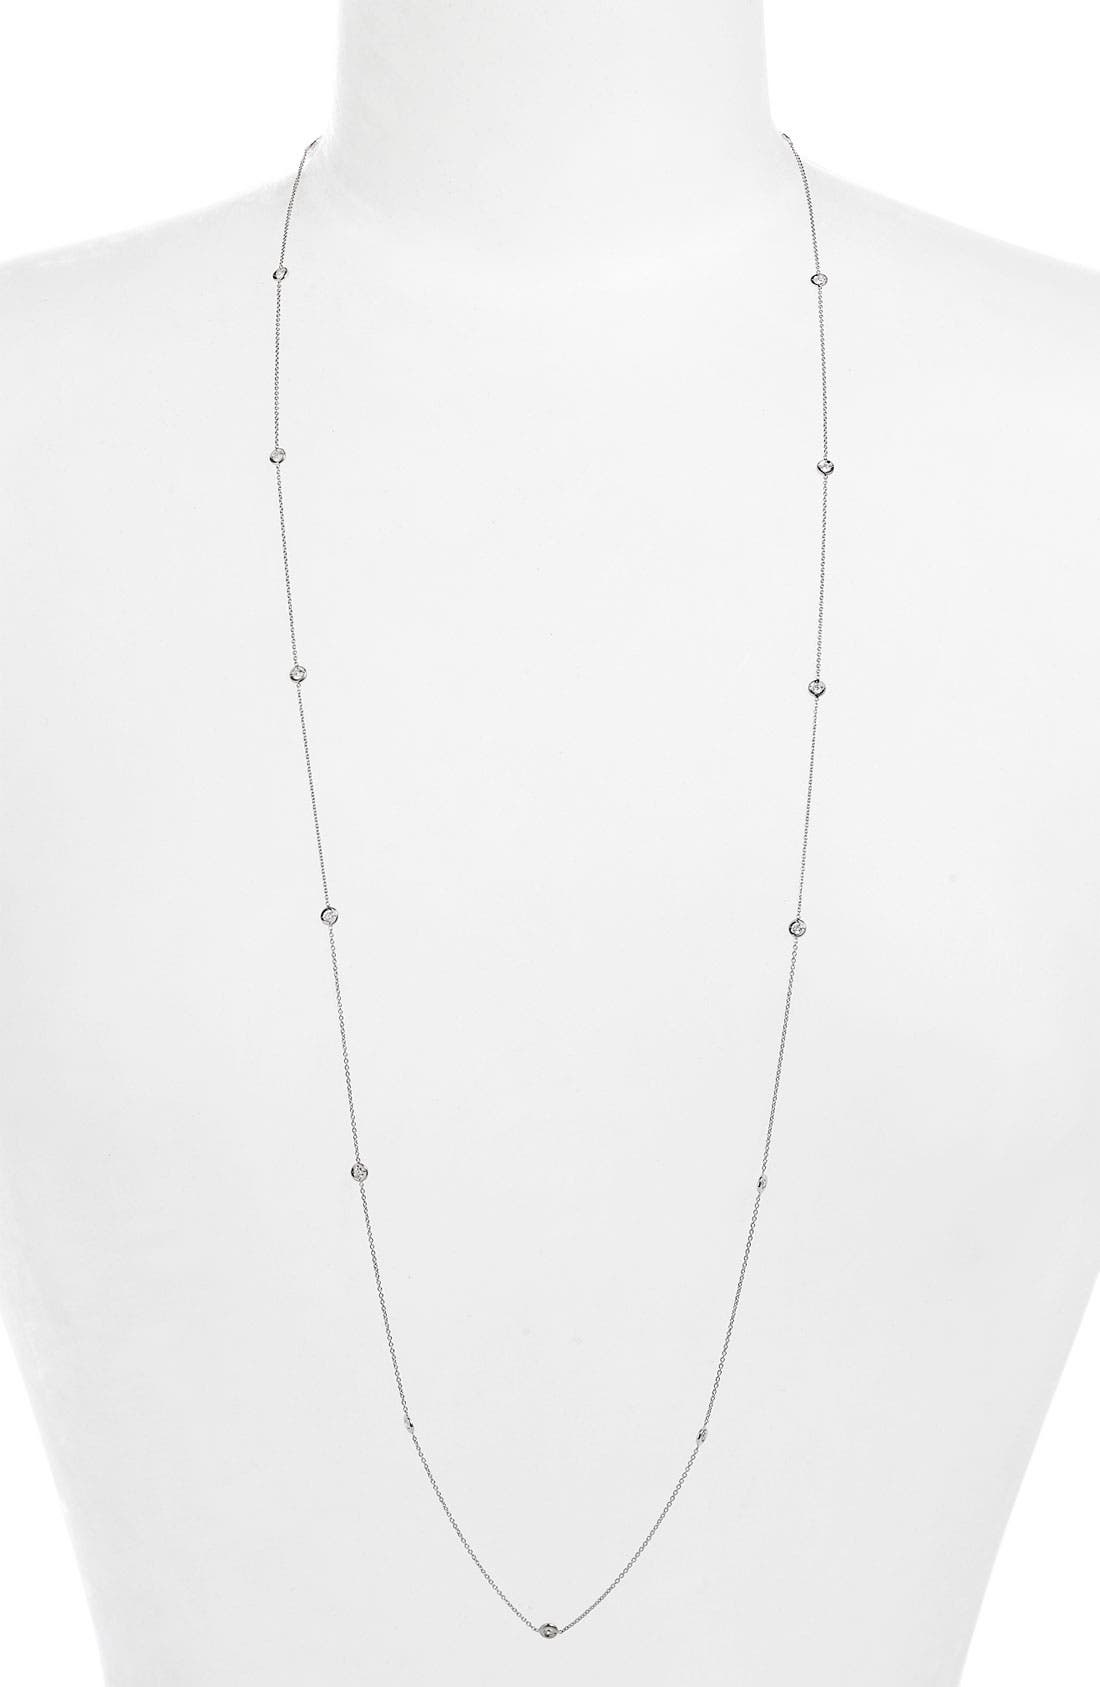 Diamond Station Necklace,                         Main,                         color, White Gold